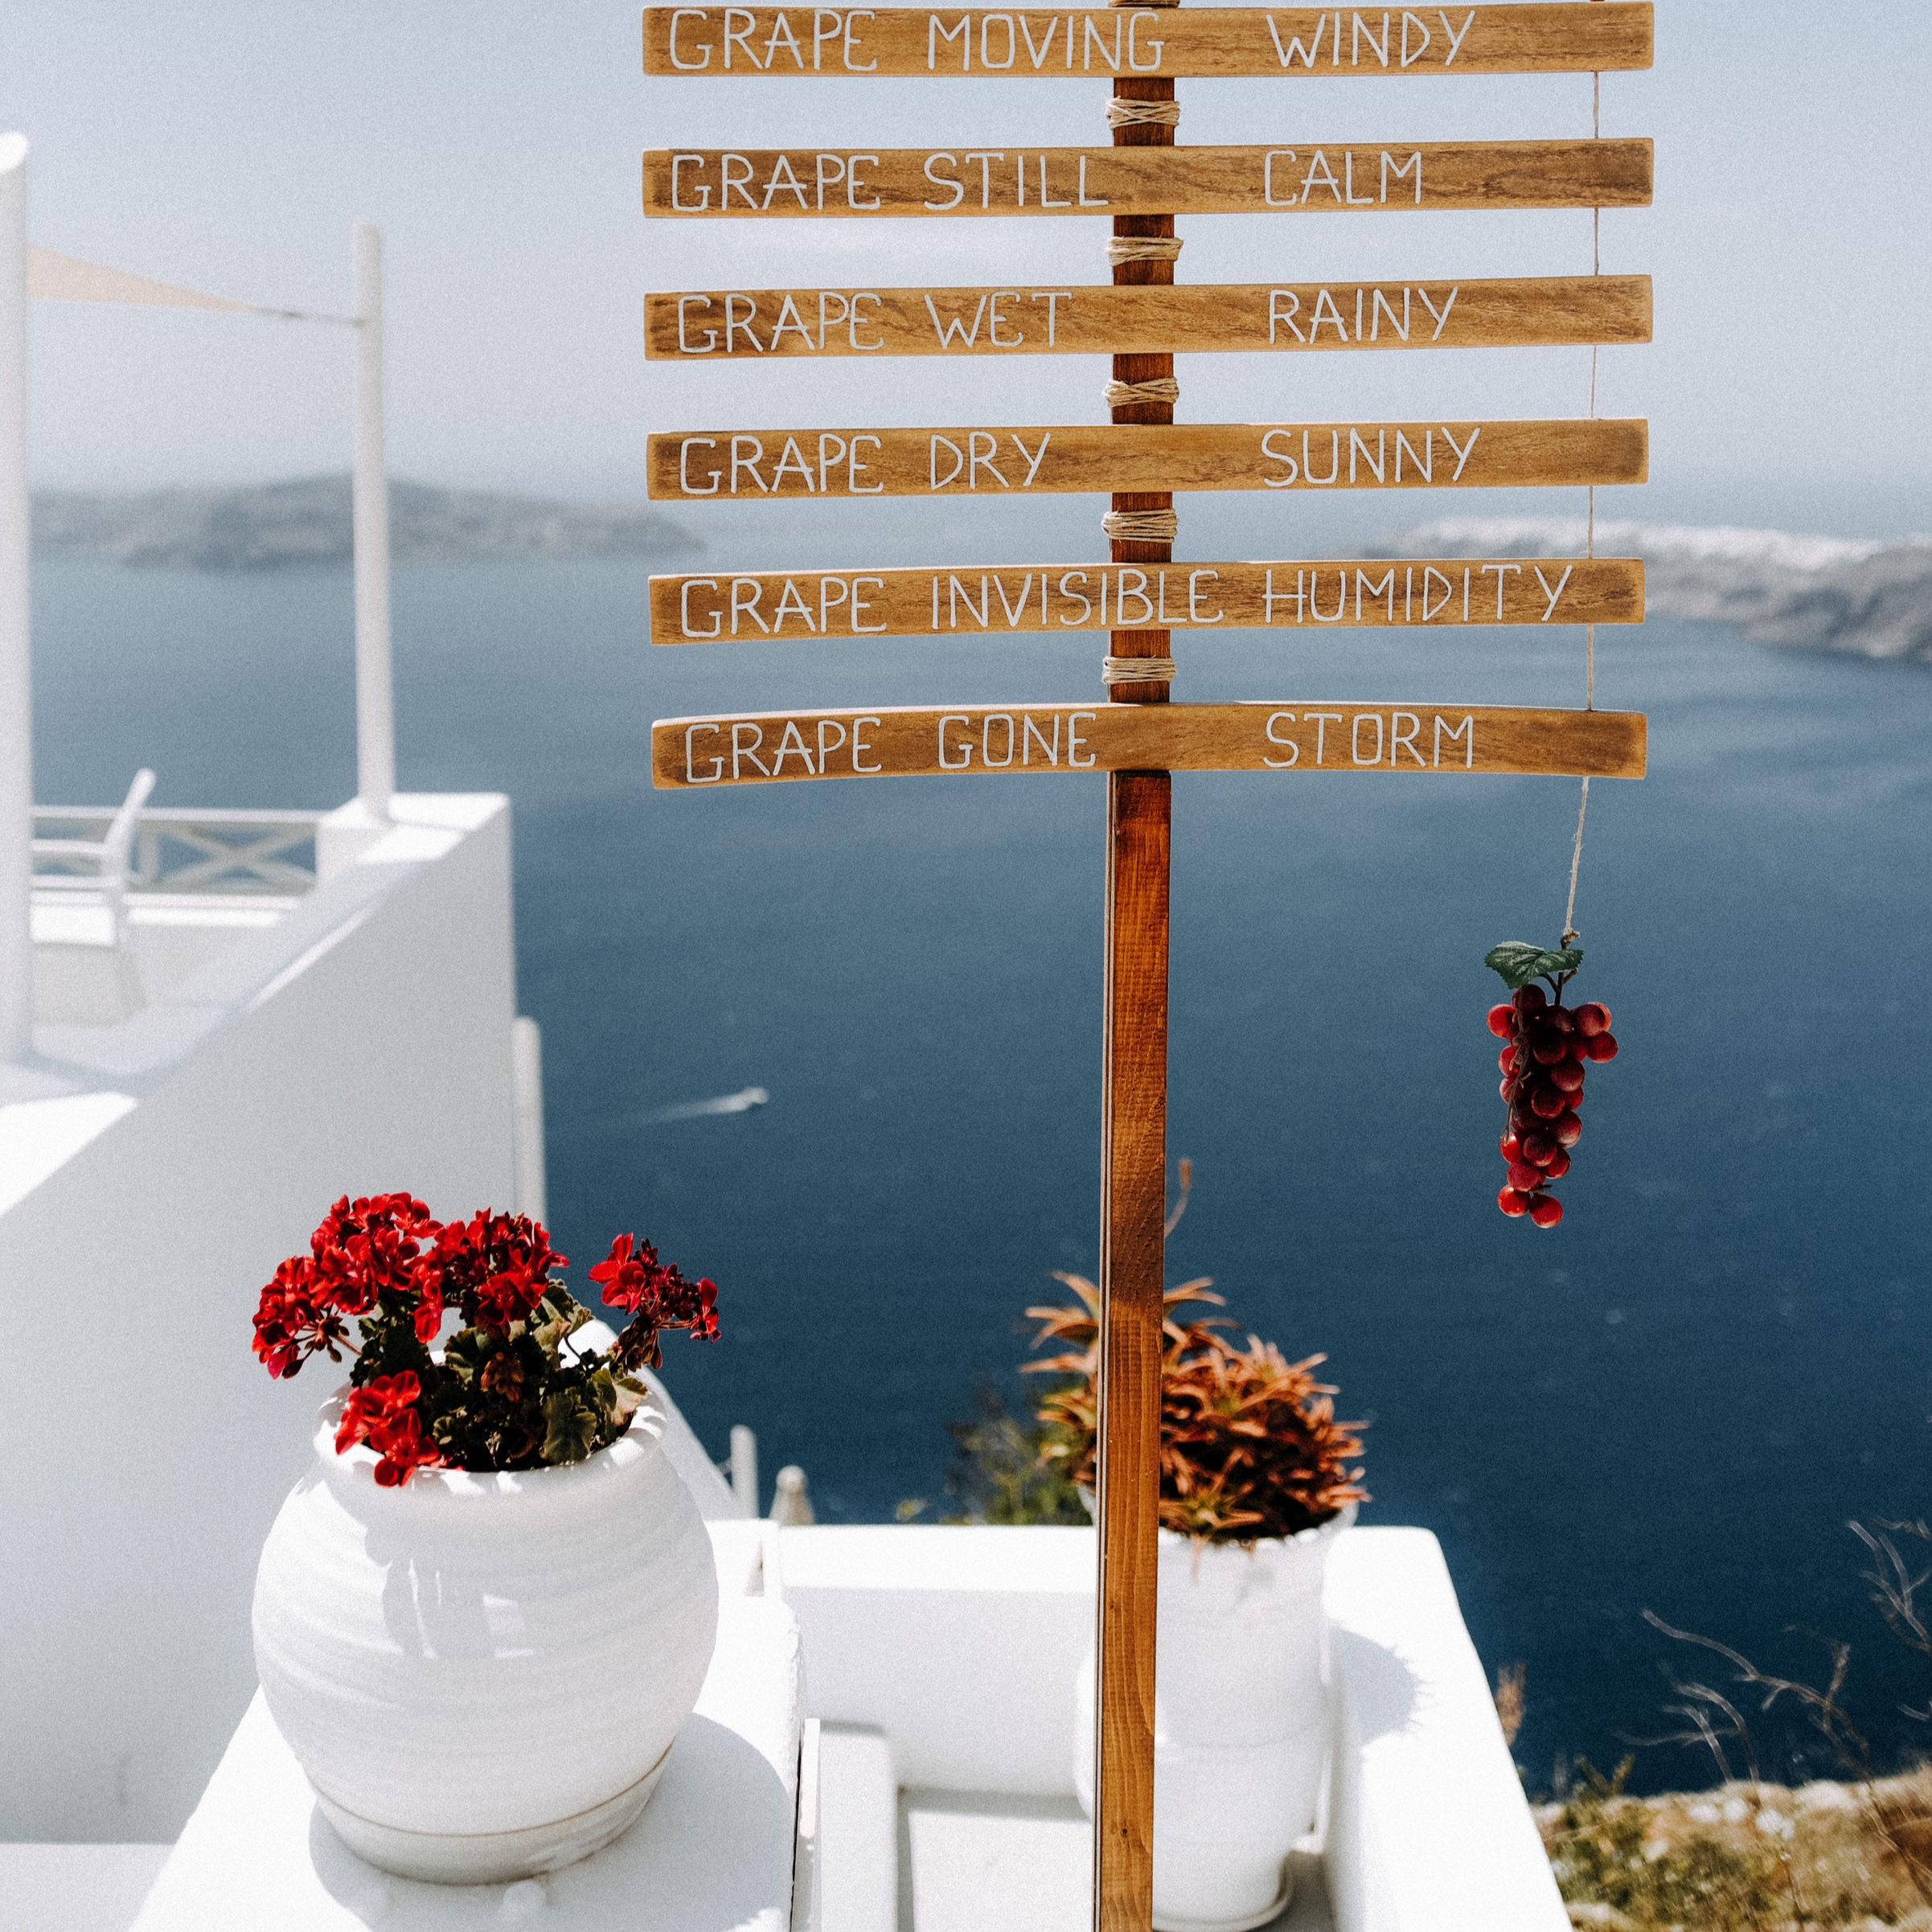 travel-to-santorini-greece-alone.jpg